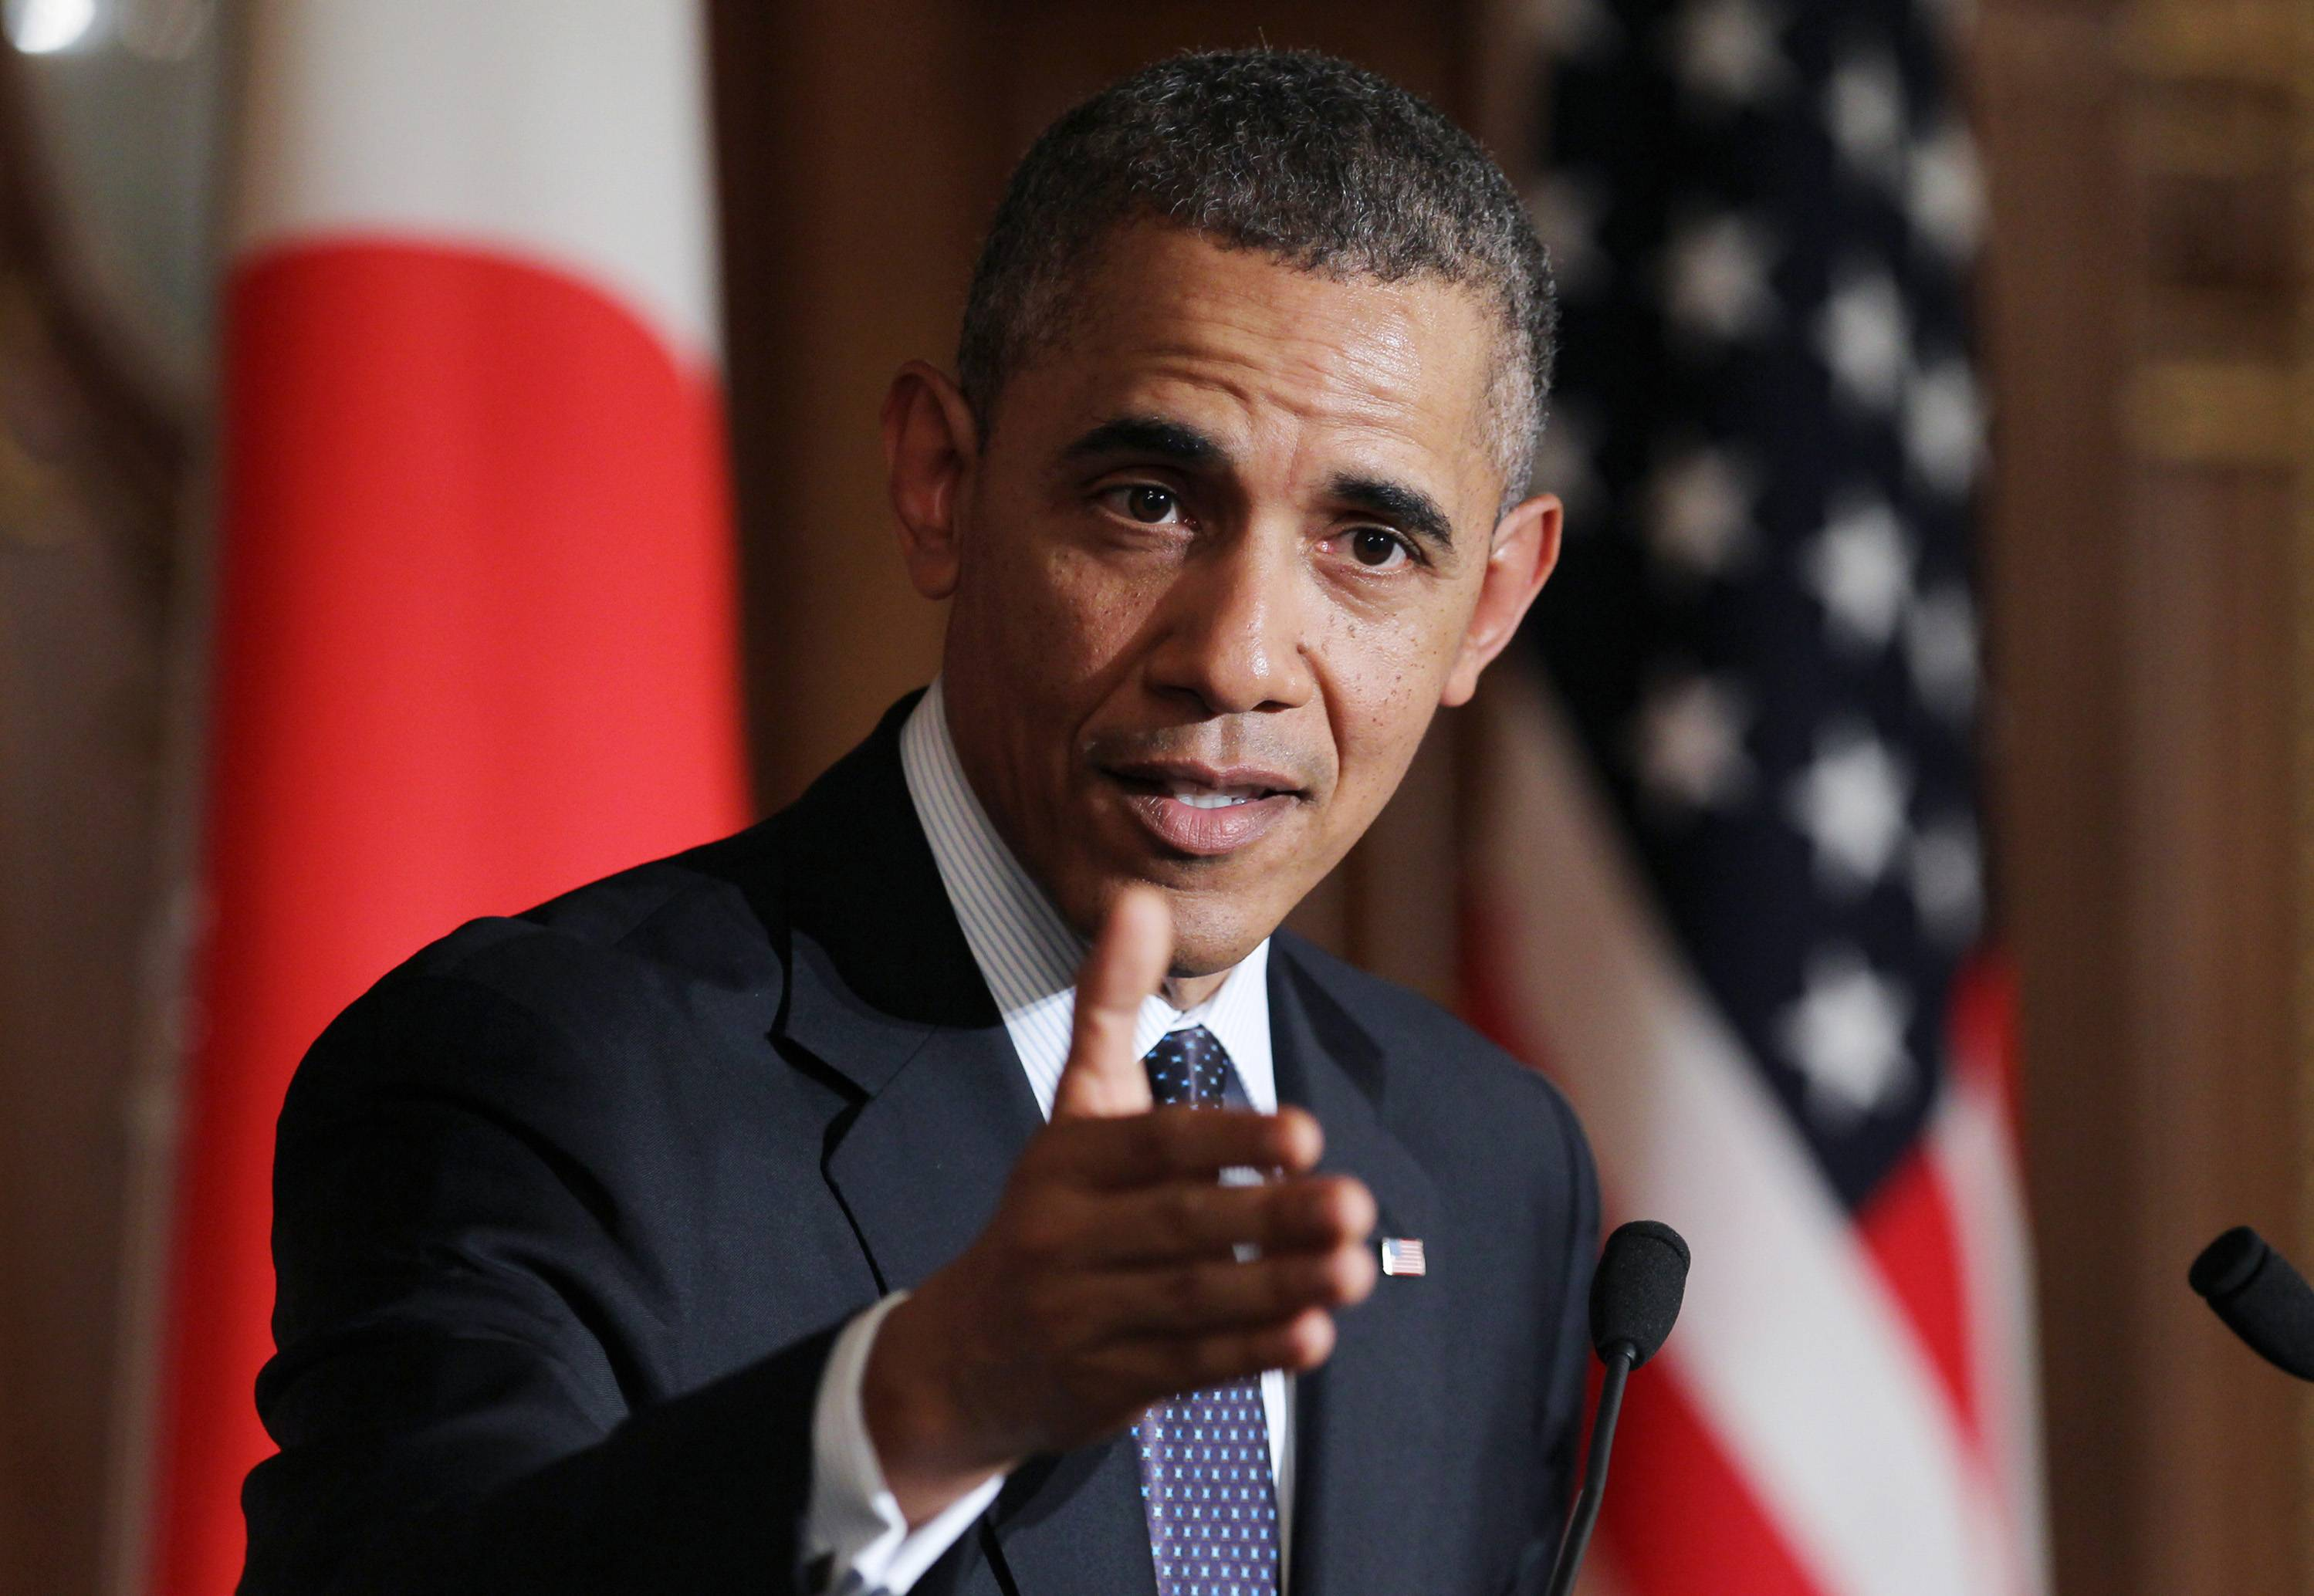 Obama to Russia: More sanctions are 'teed up'